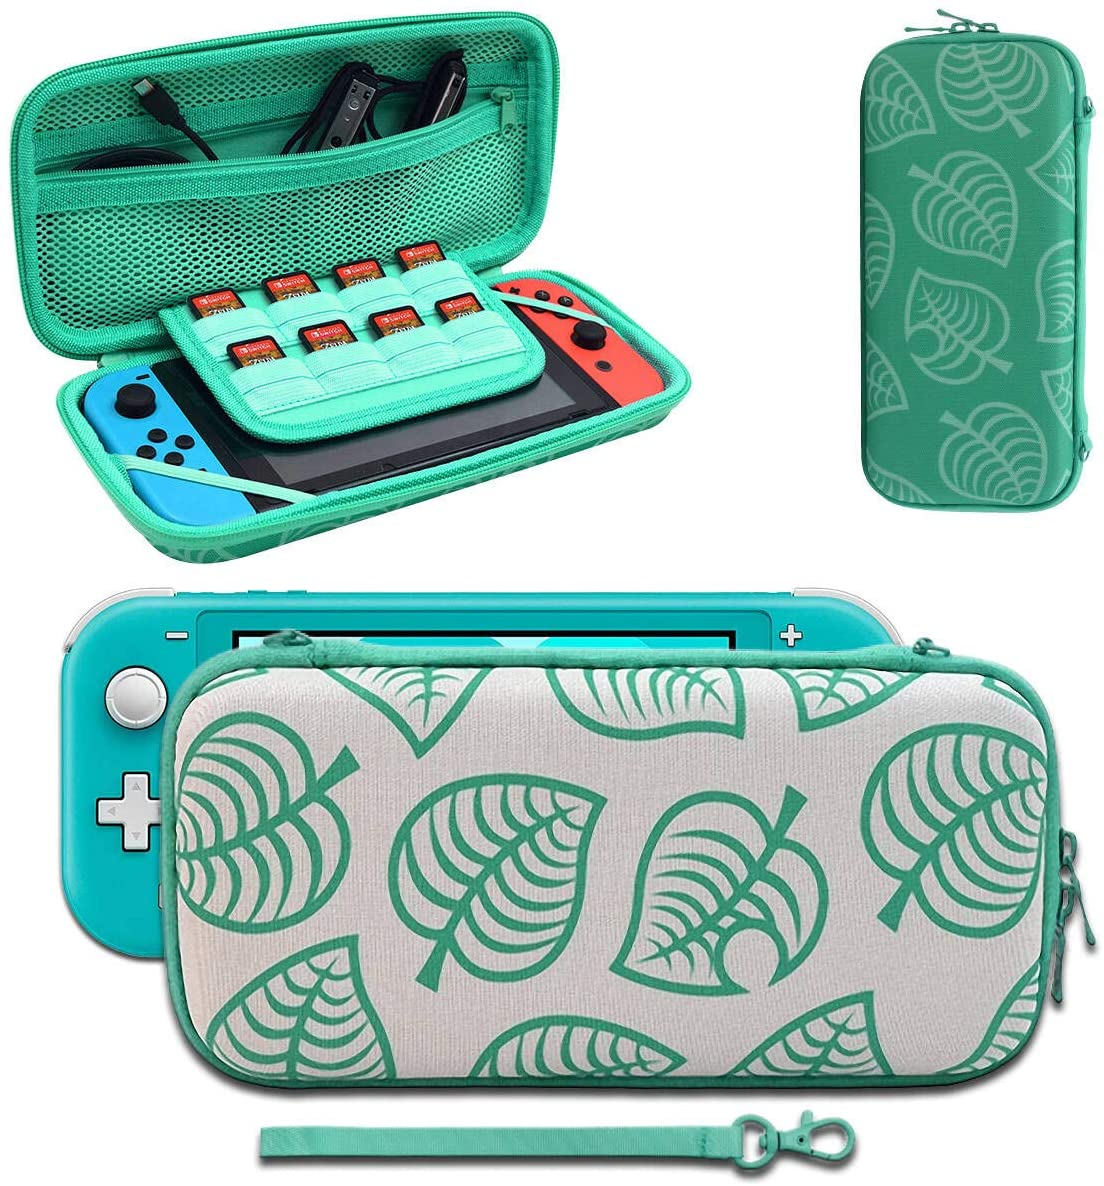 Carrying Case Compatible with Nintendo Switch, [for Animal New Horizons Edition] New Leaf Crossing Design, Portable Travel Carry Case Bag for Nintendo Switch